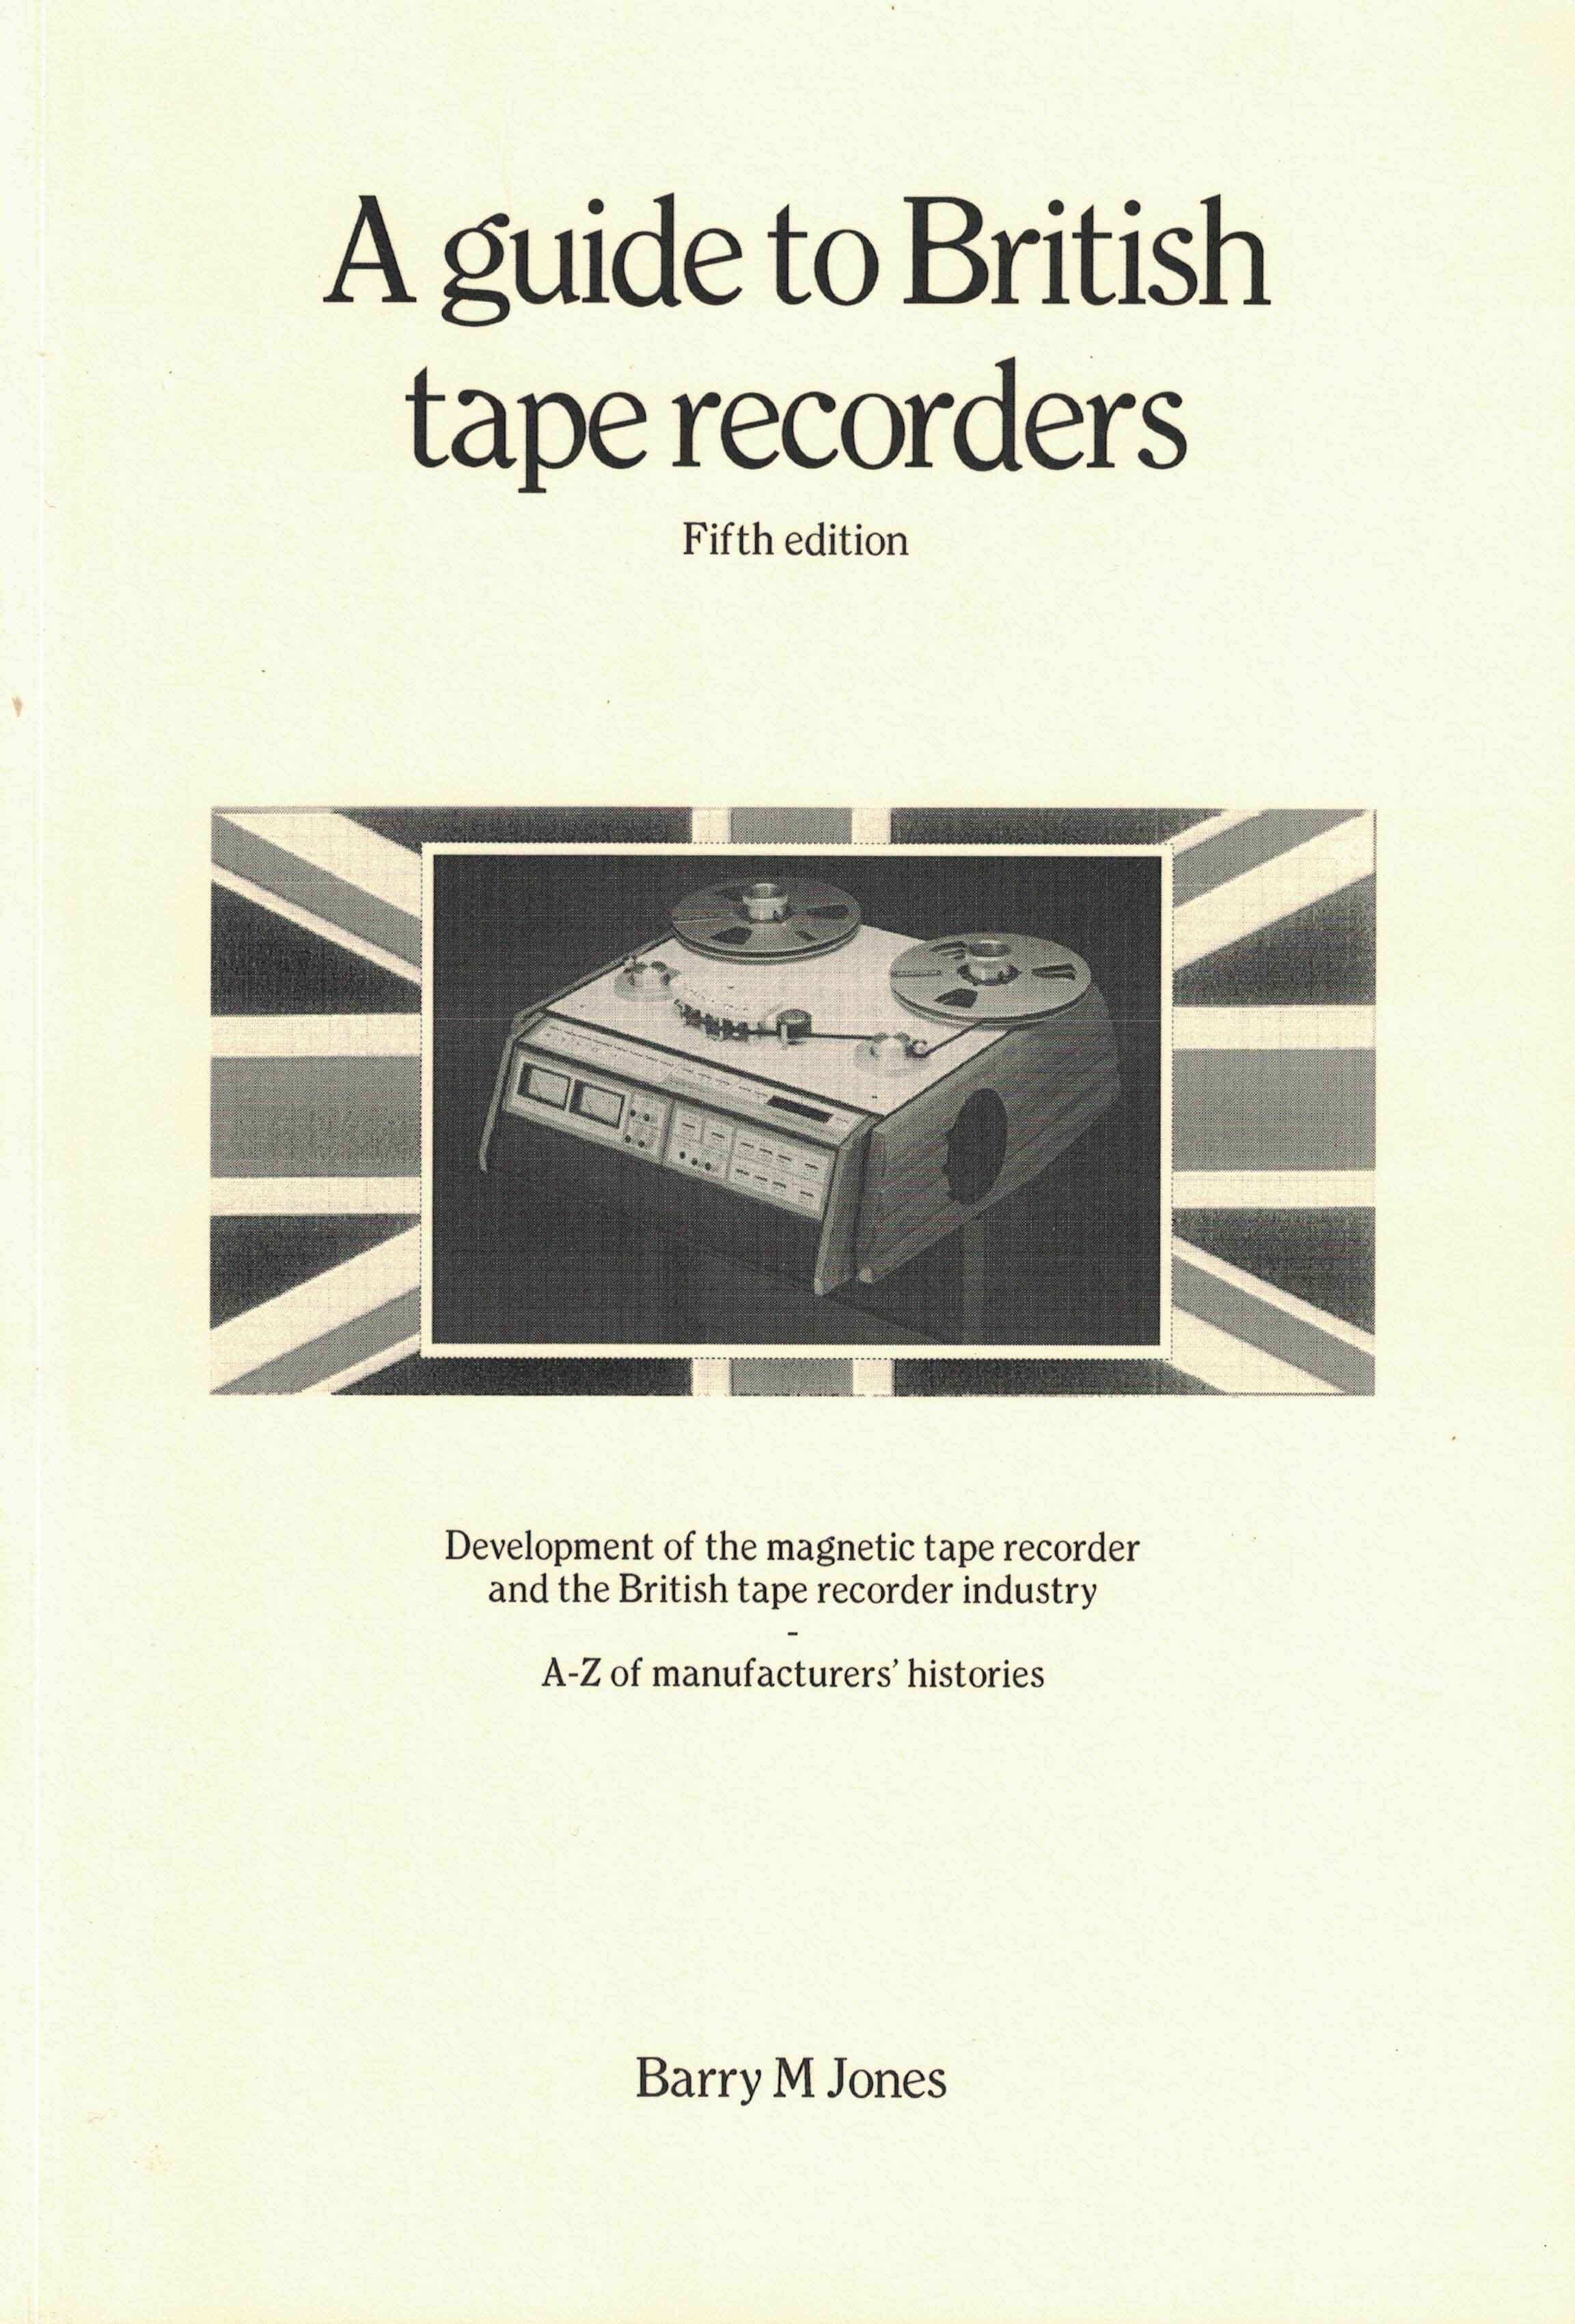 A Guide to British tape recorders